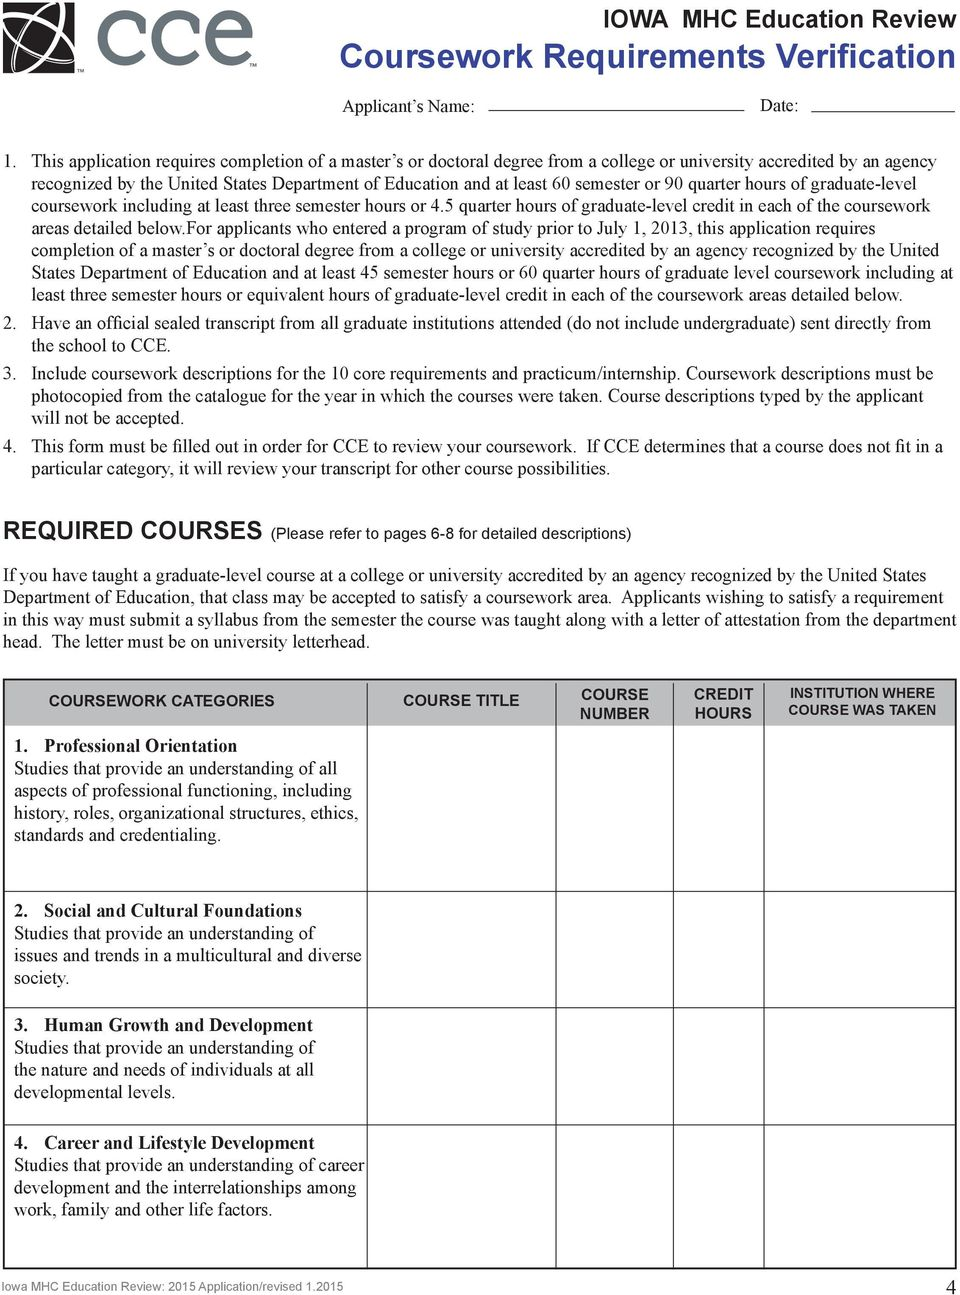 semester or 90 quarter hours of graduate-level coursework including at least three semester hours or 4.5 quarter hours of graduate-level credit in each of the coursework areas detailed below.